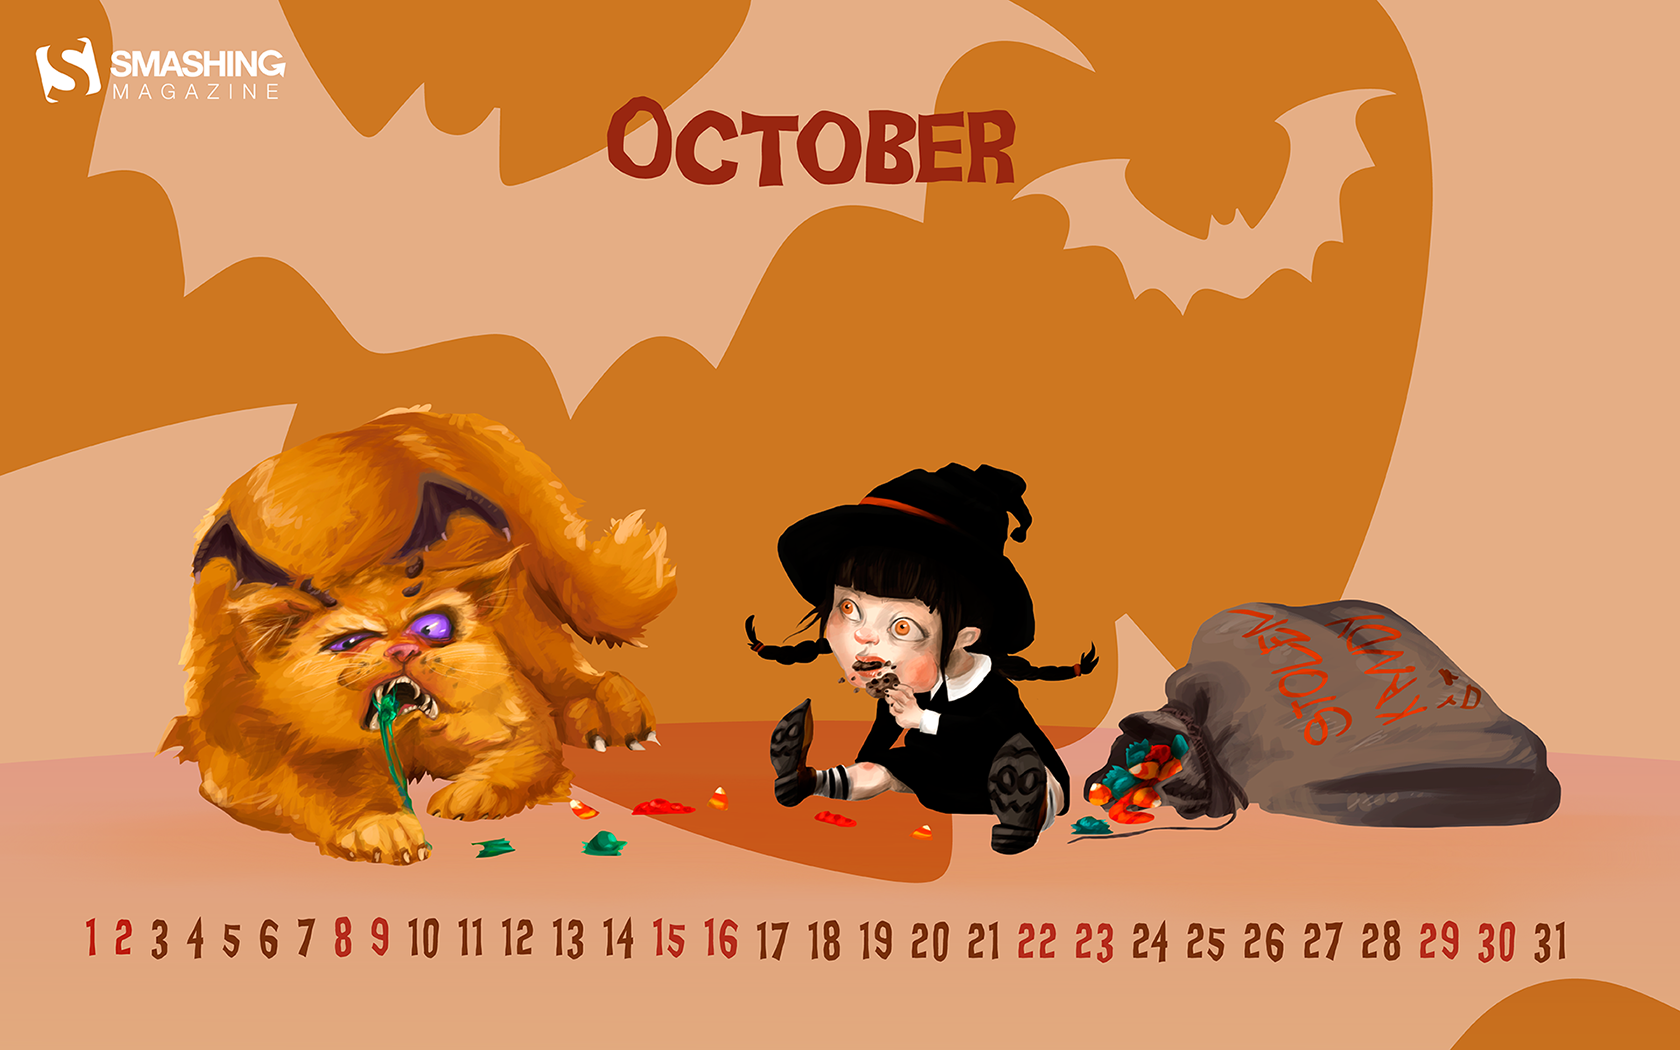 Desktop Wallpaper Calendars: October 2016.